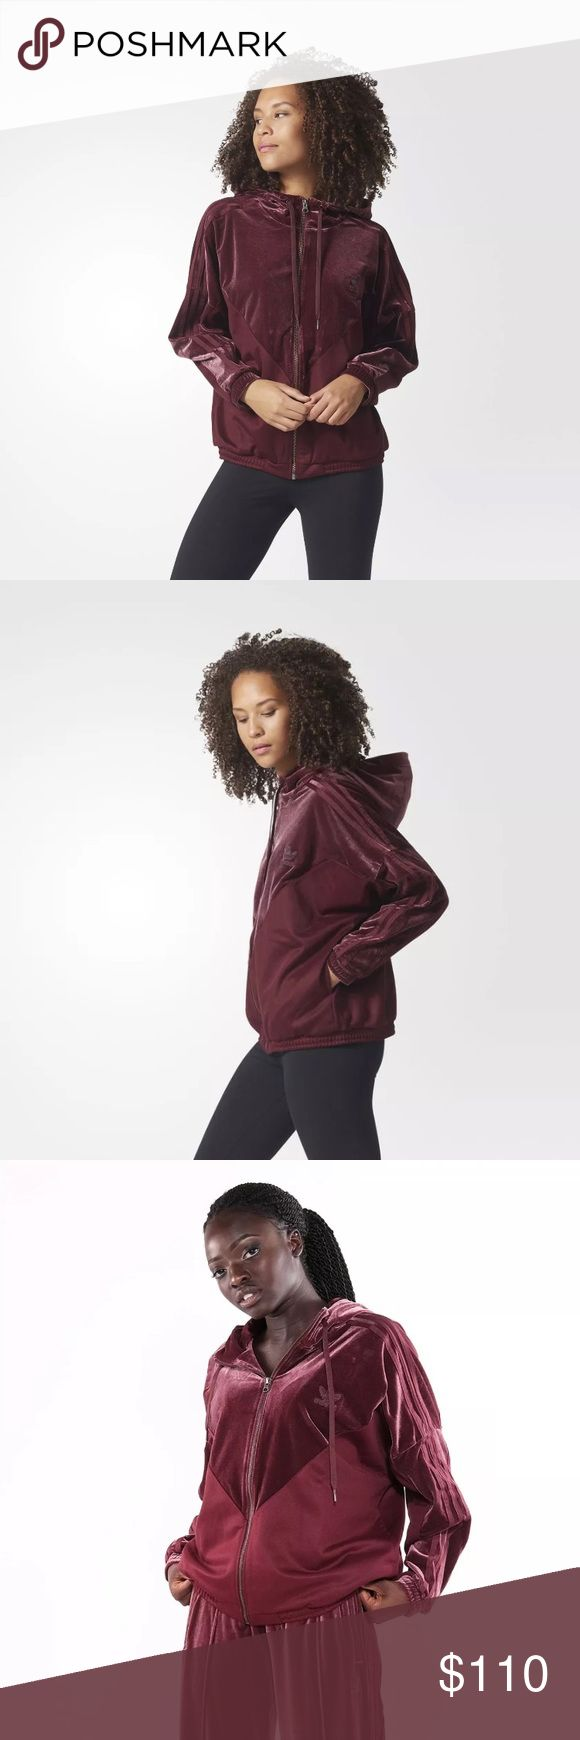 Adidas Velvet Vibes Oversize Hoodie Jacket Velvet meets the streets to create the stylish urban look of this women's hoodie. Sporty piqué brings a textured contrast, and the oversize fit gives off casual, trendy vibes.   Full zip with adjustable hoodie Ribbed cuffs and hem 3-Stripes on sleeves Embroidered Trefoil logo on chest Oversize fit Hoodie, shoulders and sleeves: 91% polyester / 9% elastane velvet; Lower body: 52% cotton / 48% polyester piqué Imported Product code: CW0270 Product…